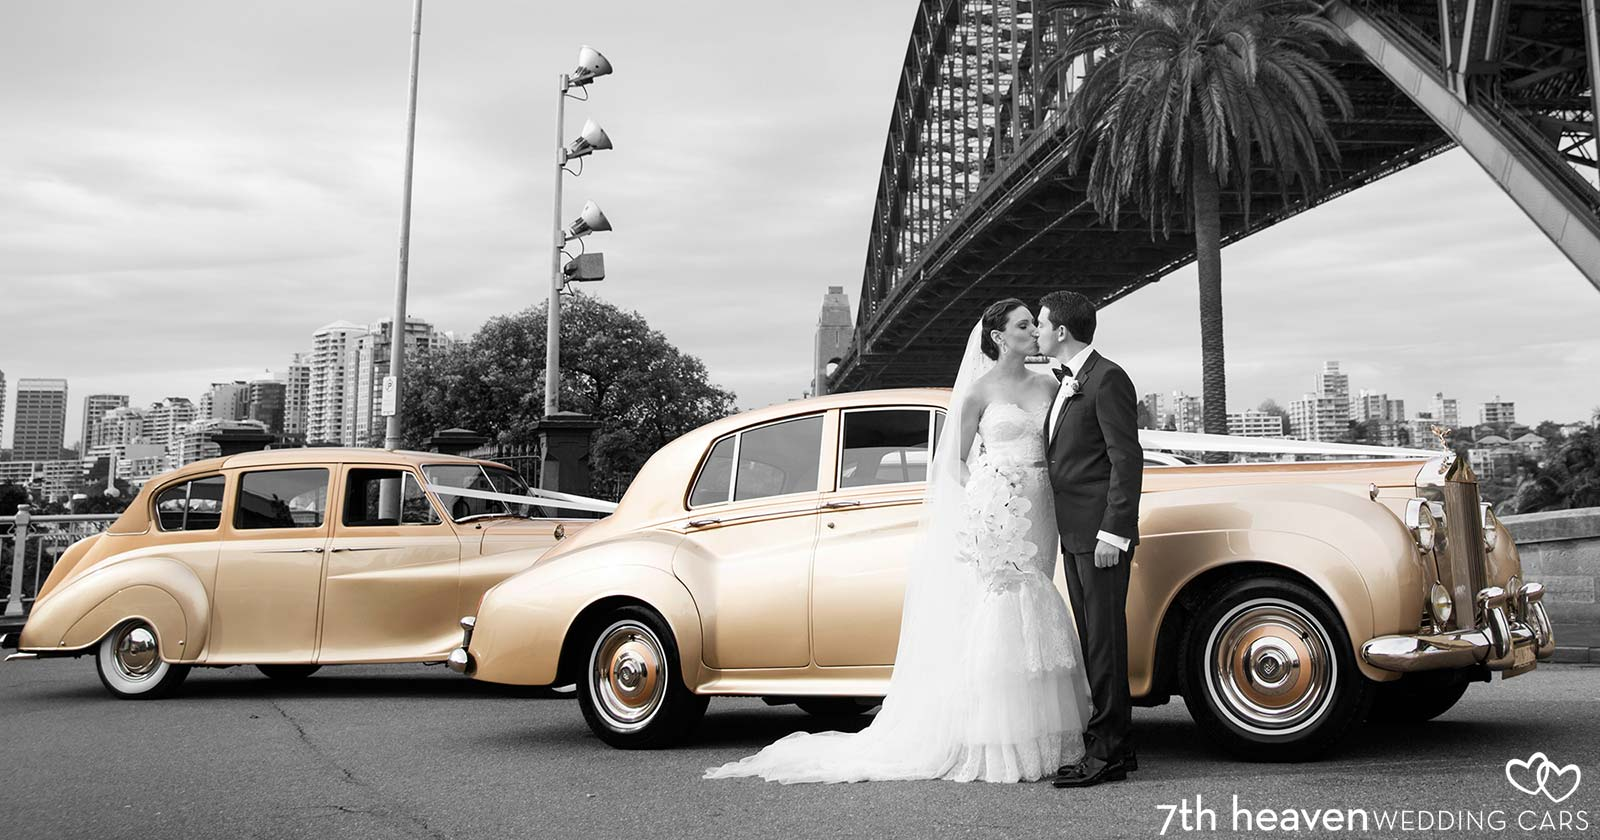 Wedding Cars Sydney